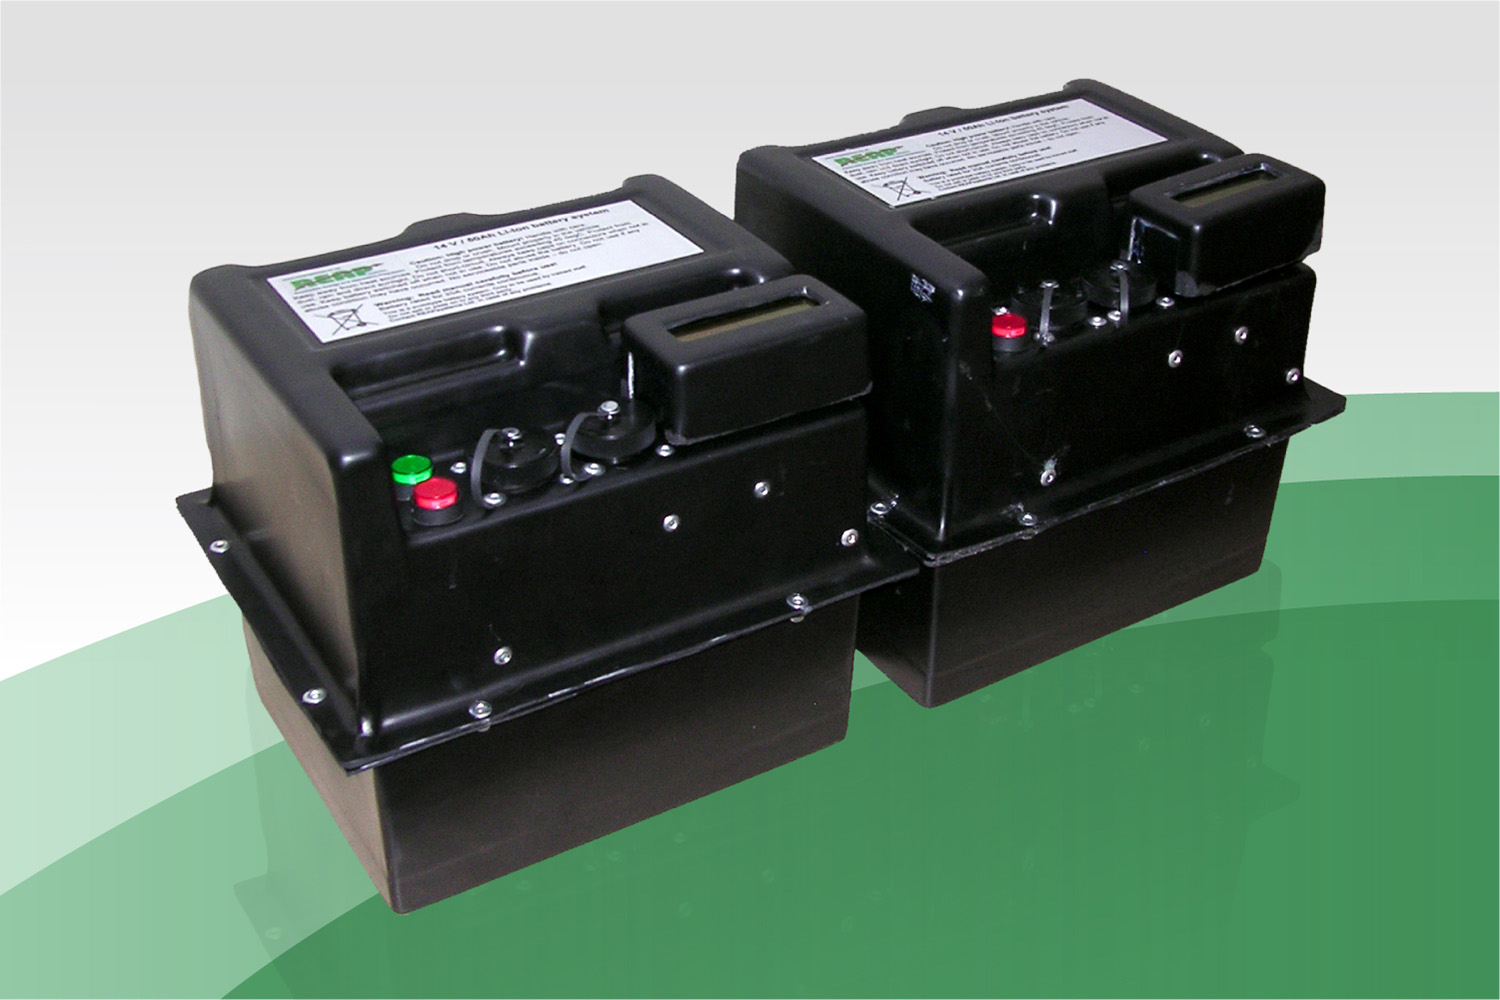 12V, 50Ah, large Li-Ion batteries, with full protection and state of charge calculation